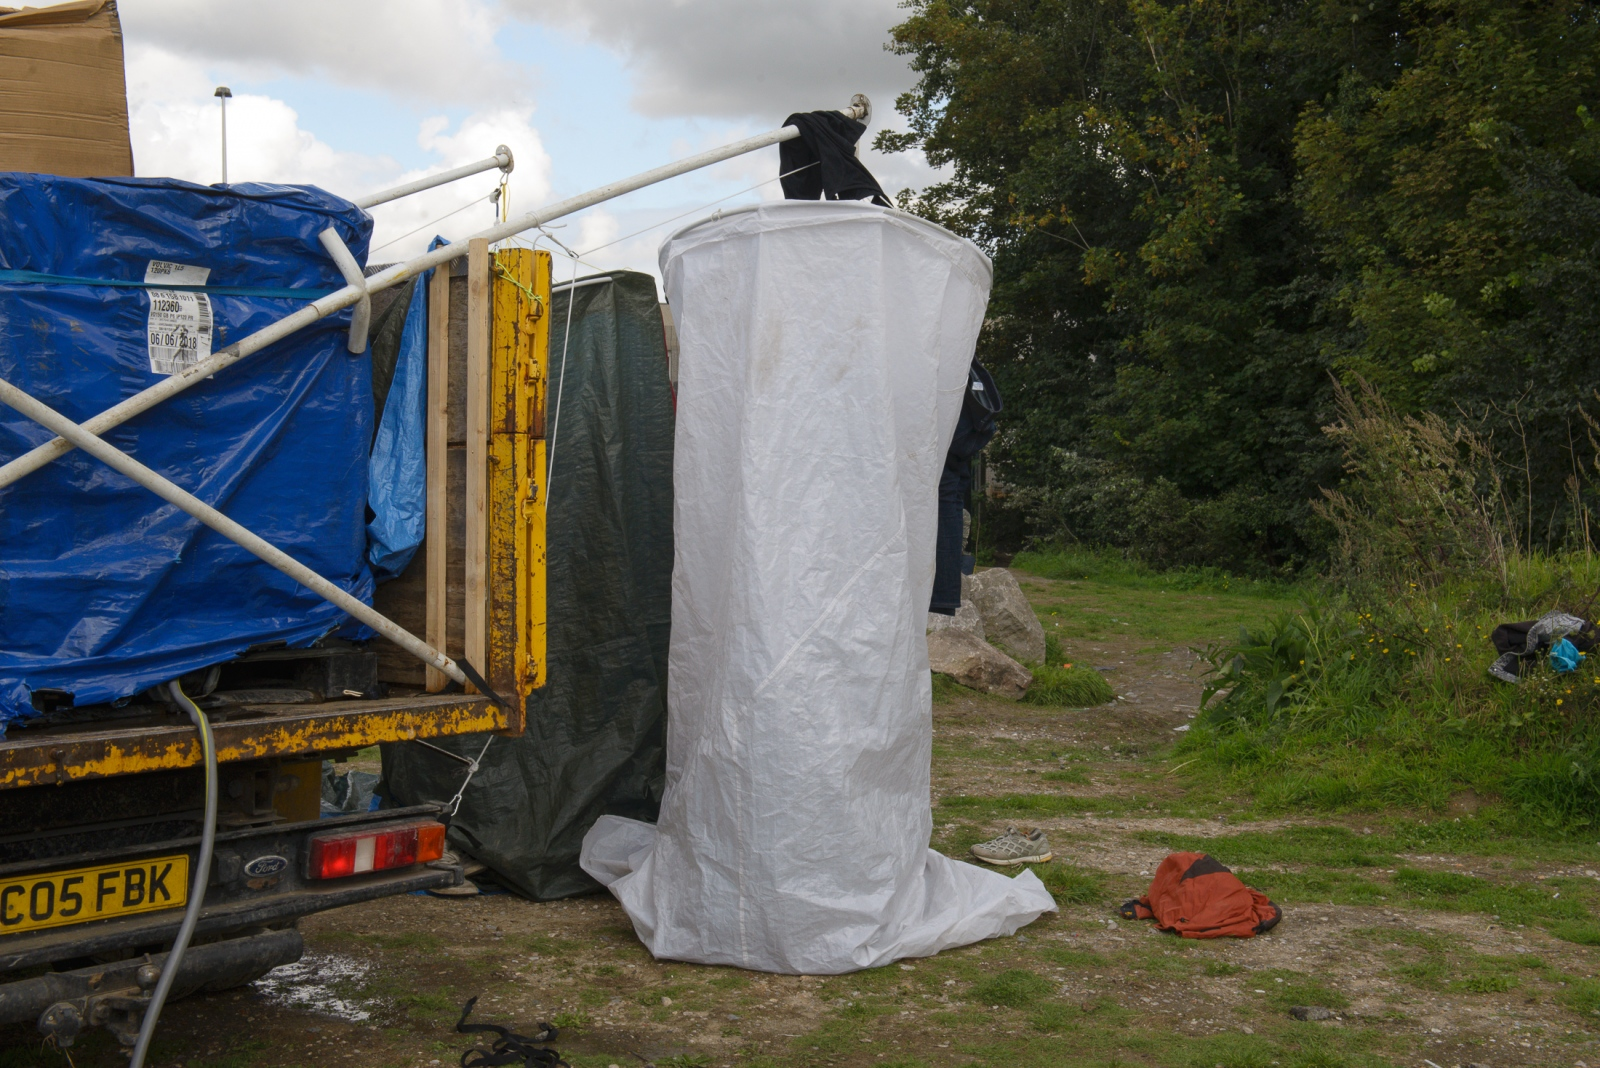 August 31, 2017 - Calais, France.  Local NGOs install six makeshift showers on a water truck. The mayor of Calais, Natacha Bouchard had chosen to pay a fine rather than provide refugees with access to safe water and sanitation. The fine was imposed after the court ruling by the highest administrative court in France that demanded the city of Calais provide certain services to refugees, including access to safe water and sanitation.